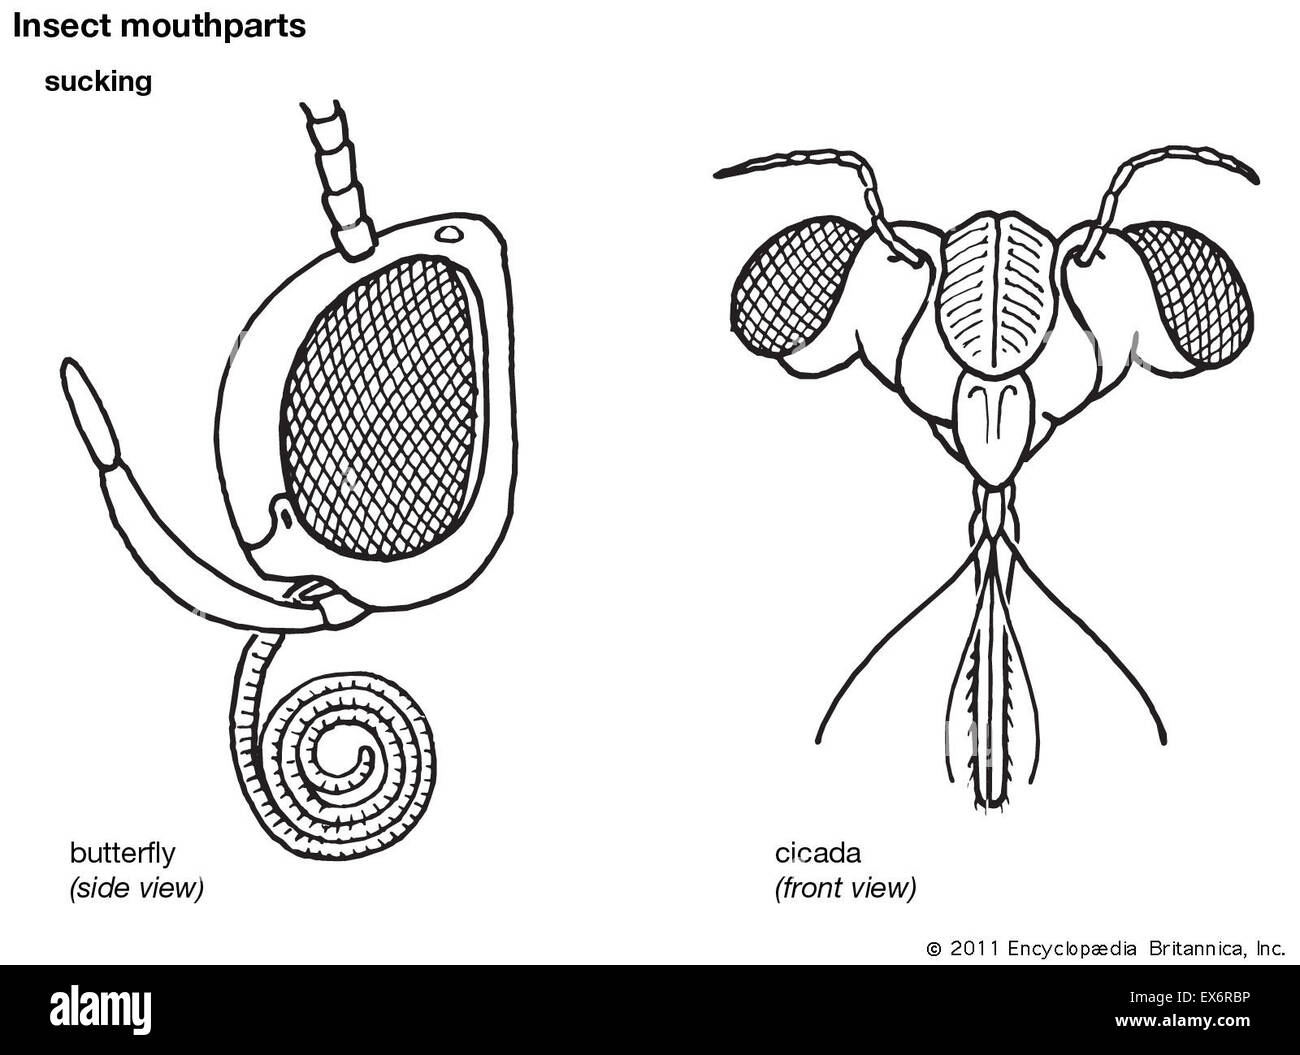 How To Draw Cockroach Mouth Parts